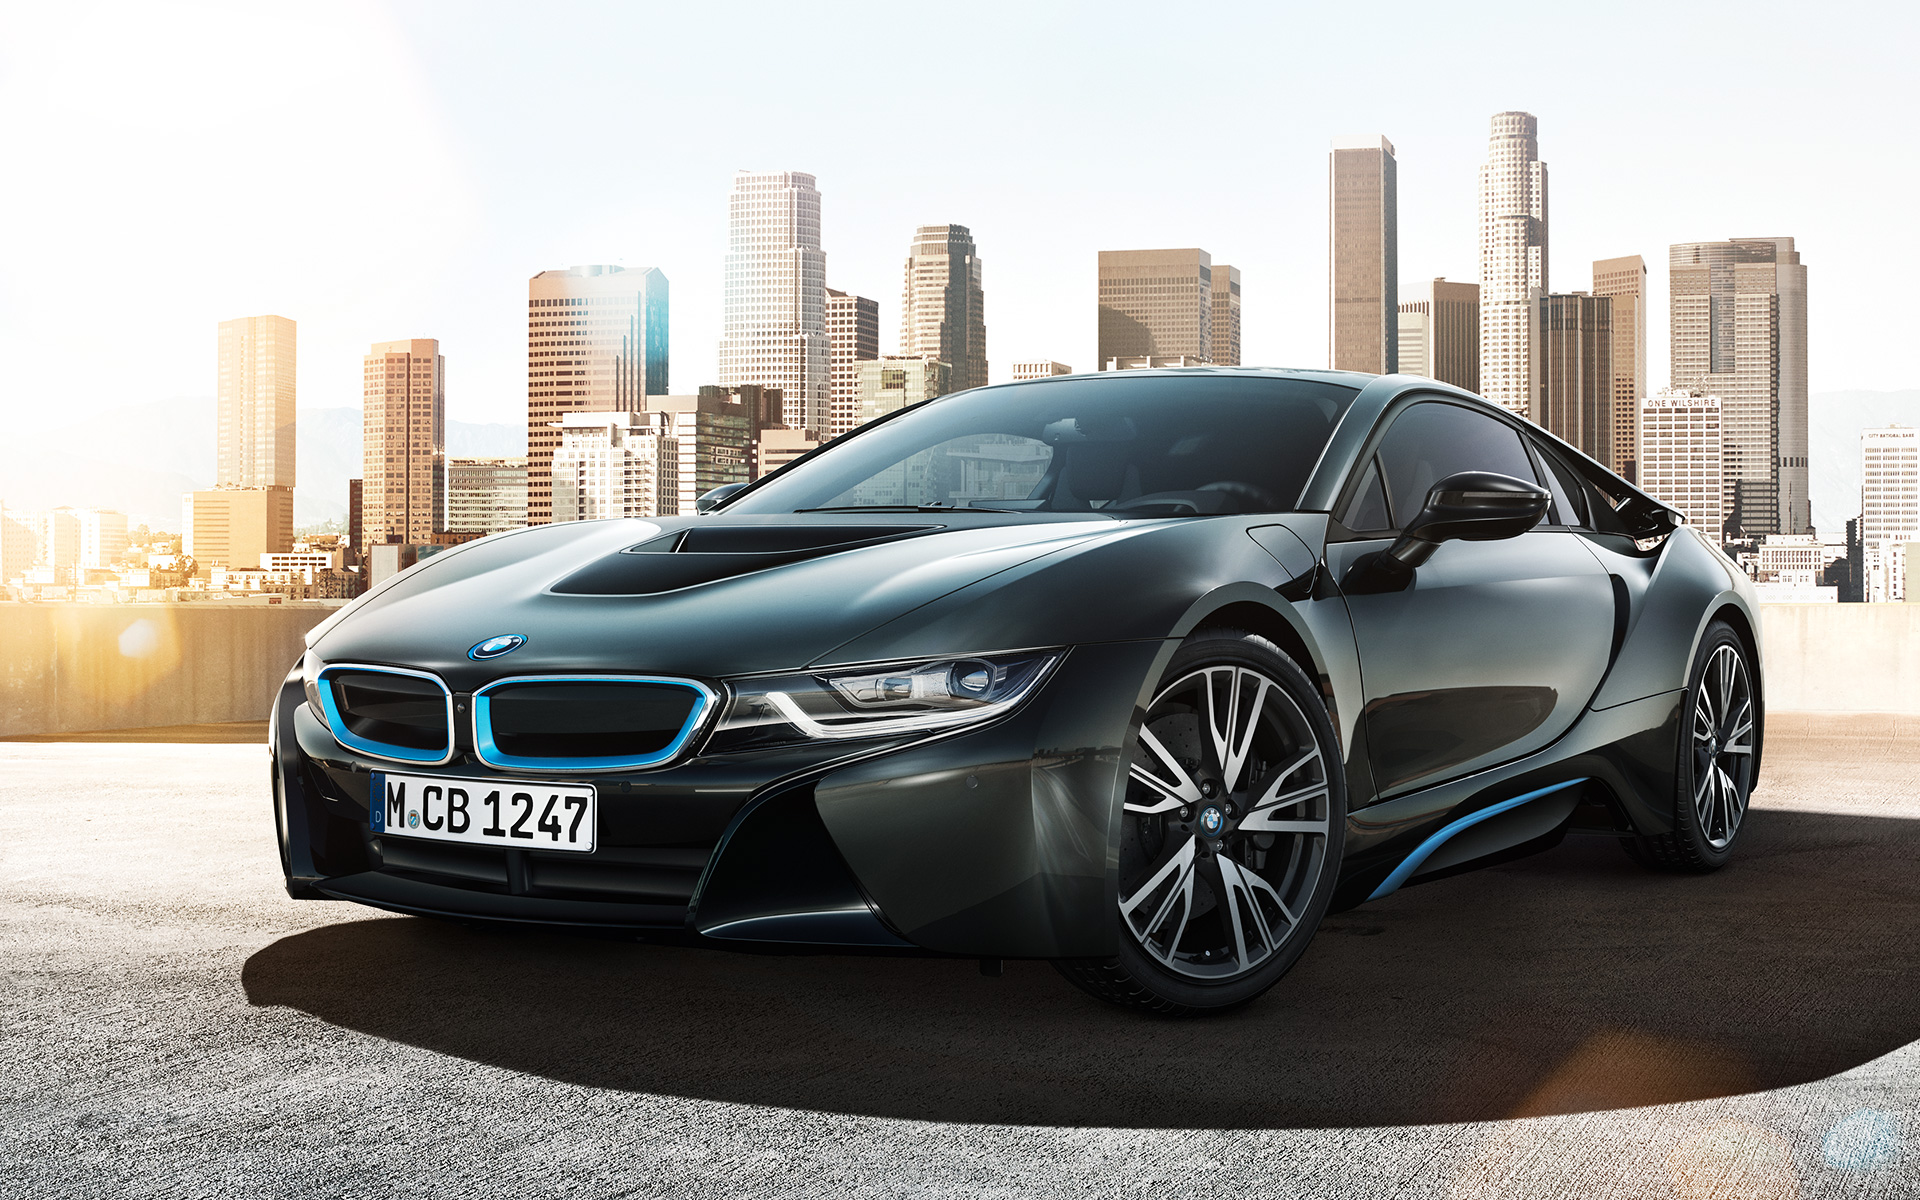 2015 BMW I8 Electric Car Review Price And Specification